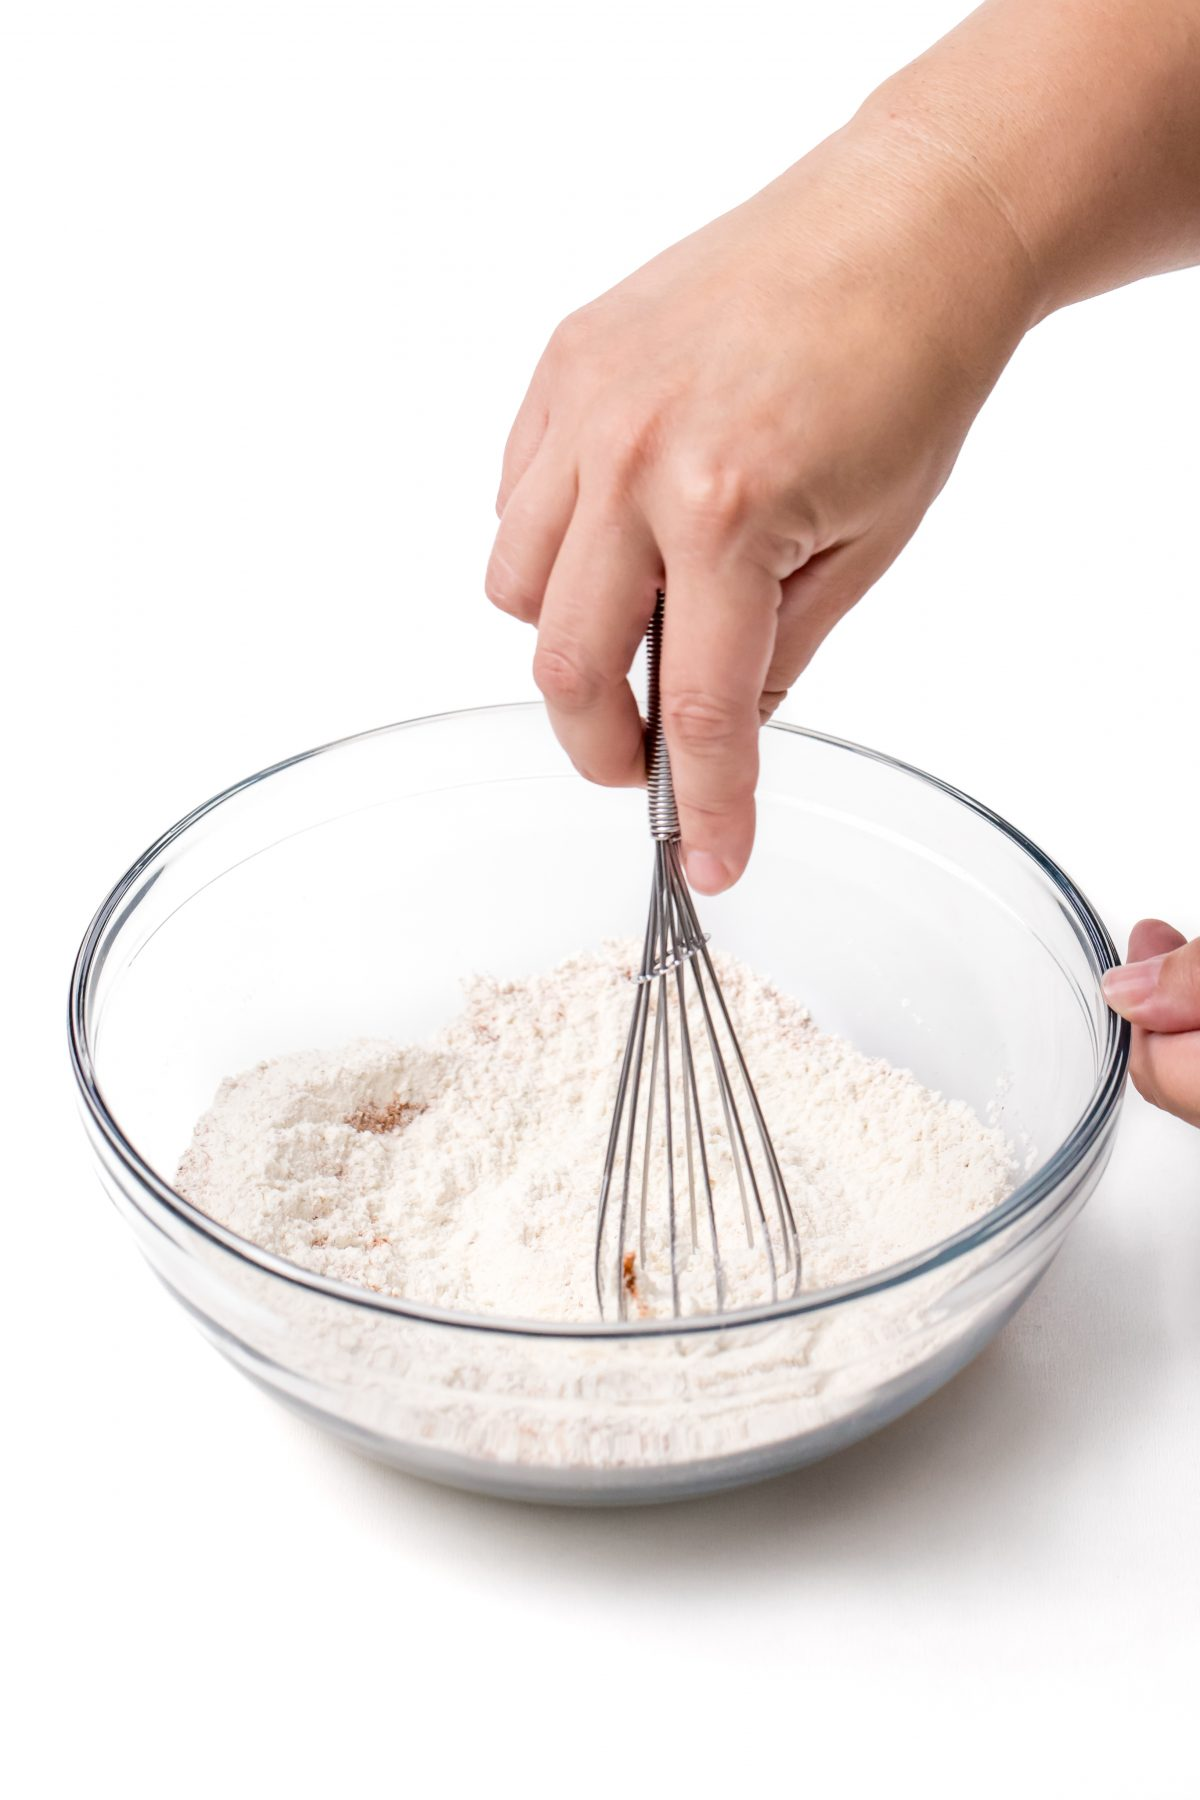 Whisk flour and seasonings together in mixing bowl